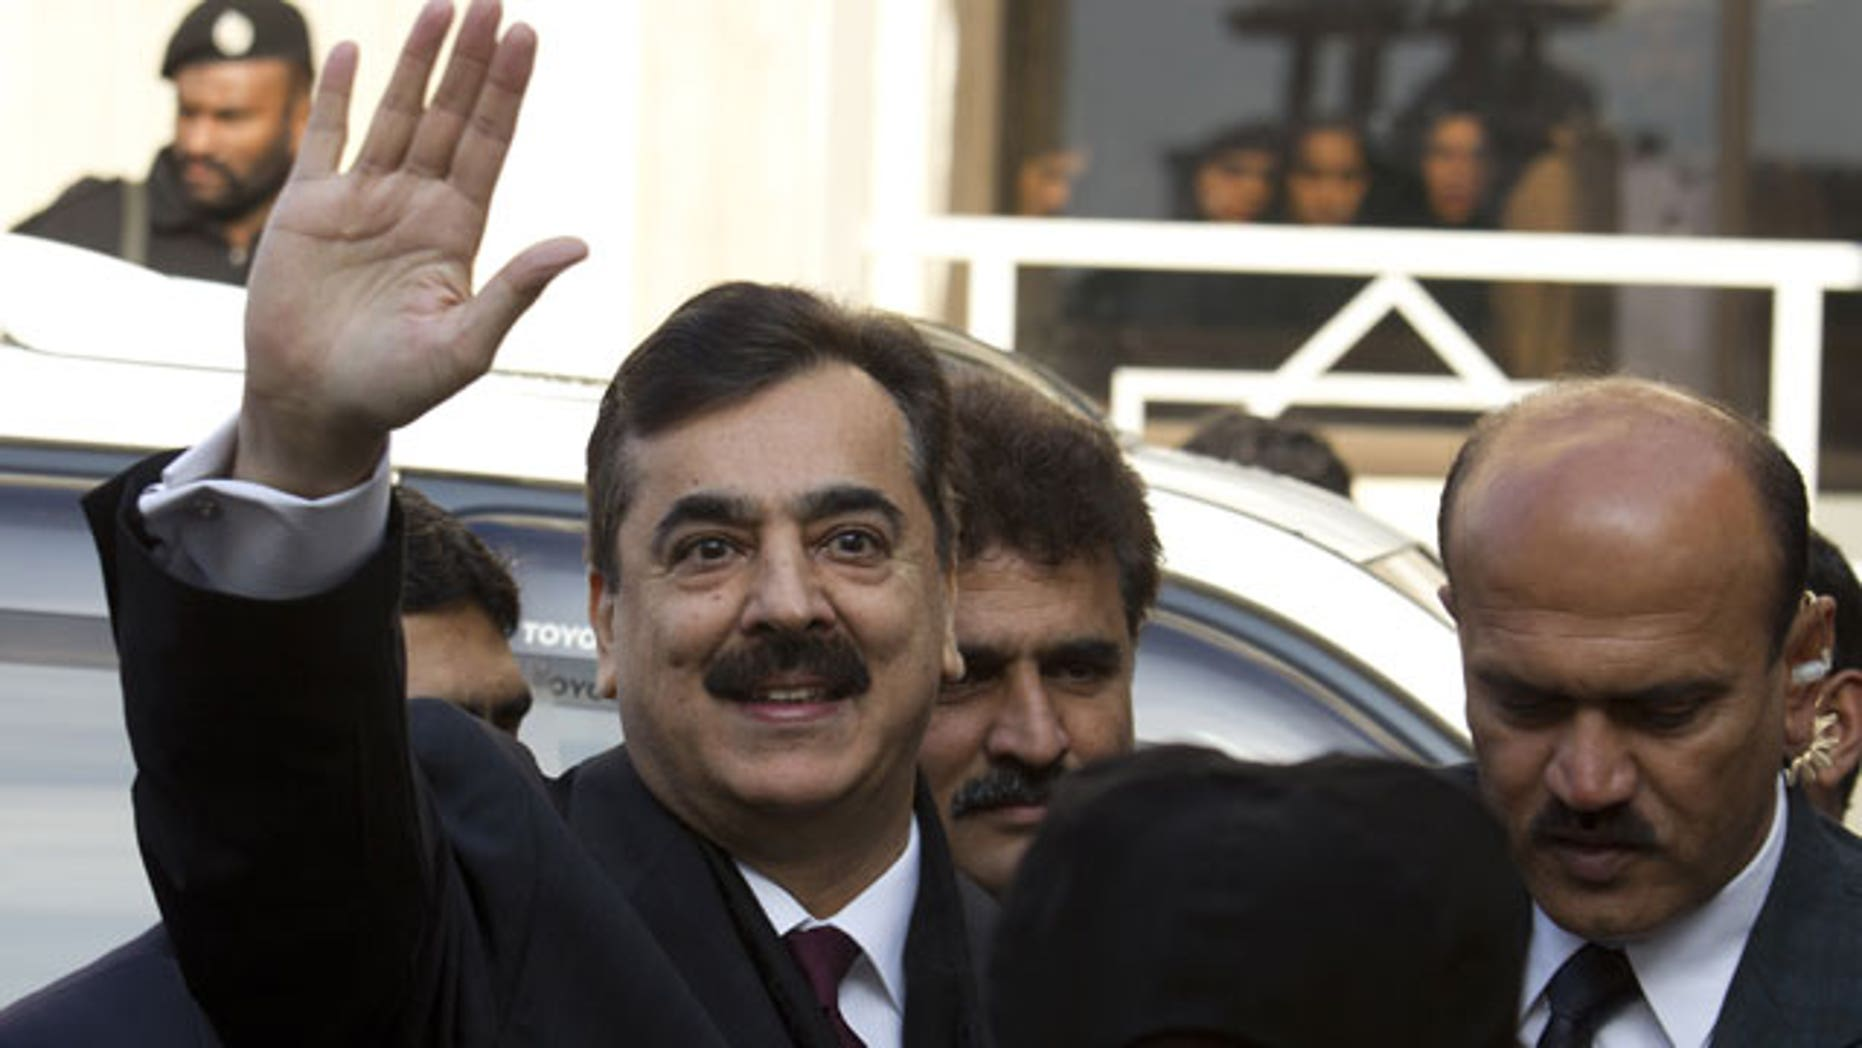 January 19, 2012: Pakistani Prime Minister Yousuf Raza Gilani waves upon his arrival at the Supreme Court in Islamabad.